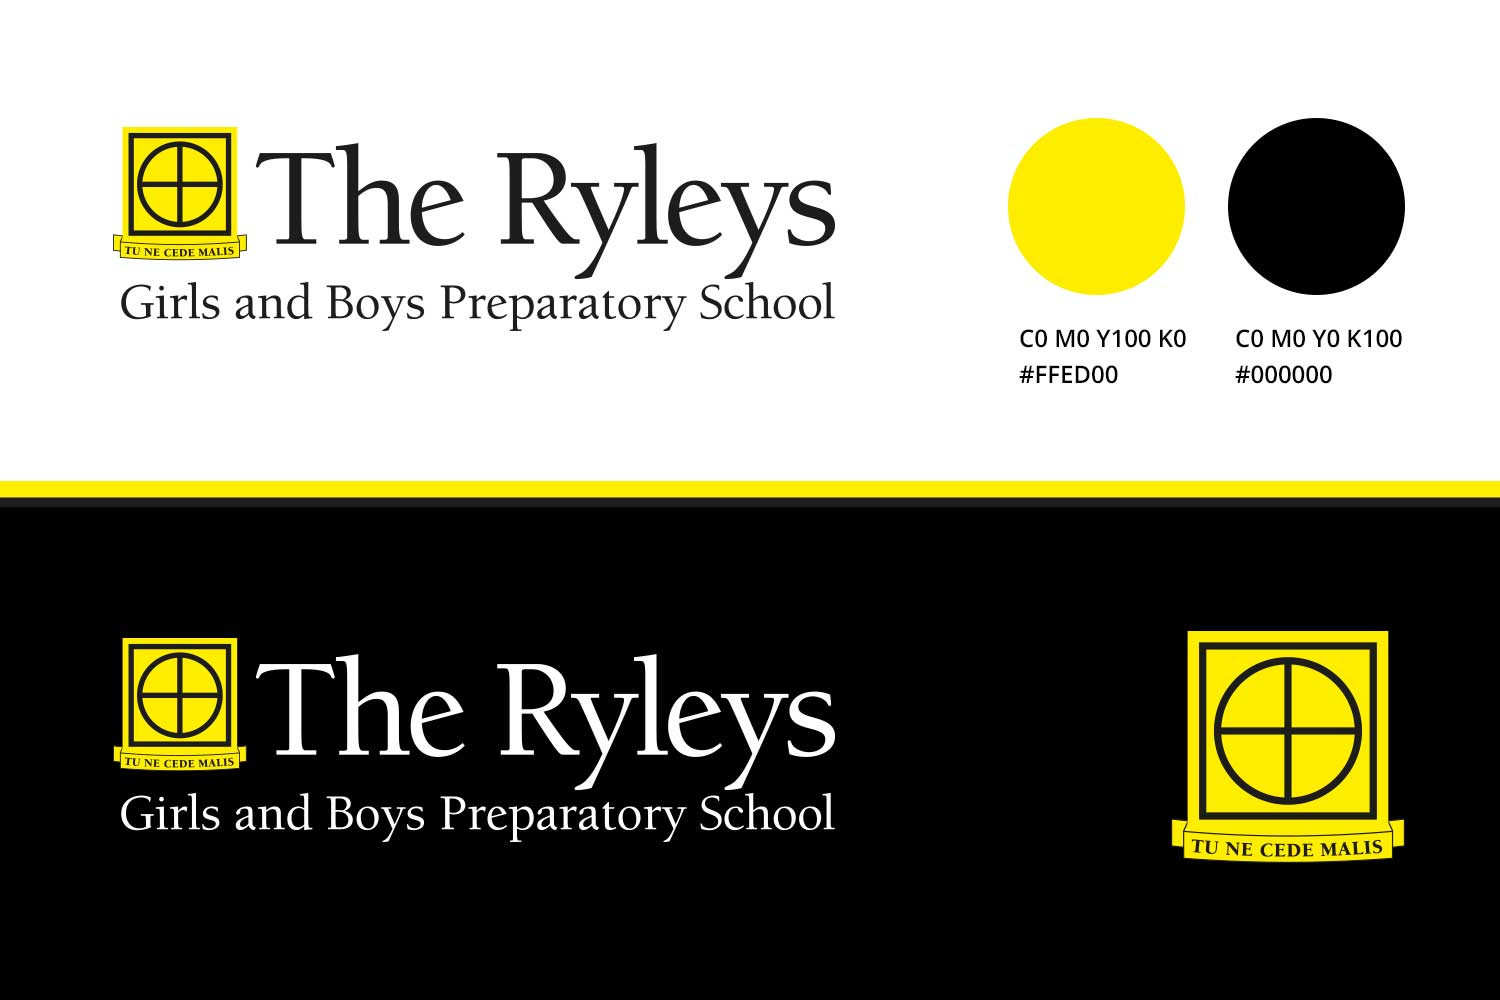 The new branding has a modern feel and incorporates the move to a mixed school